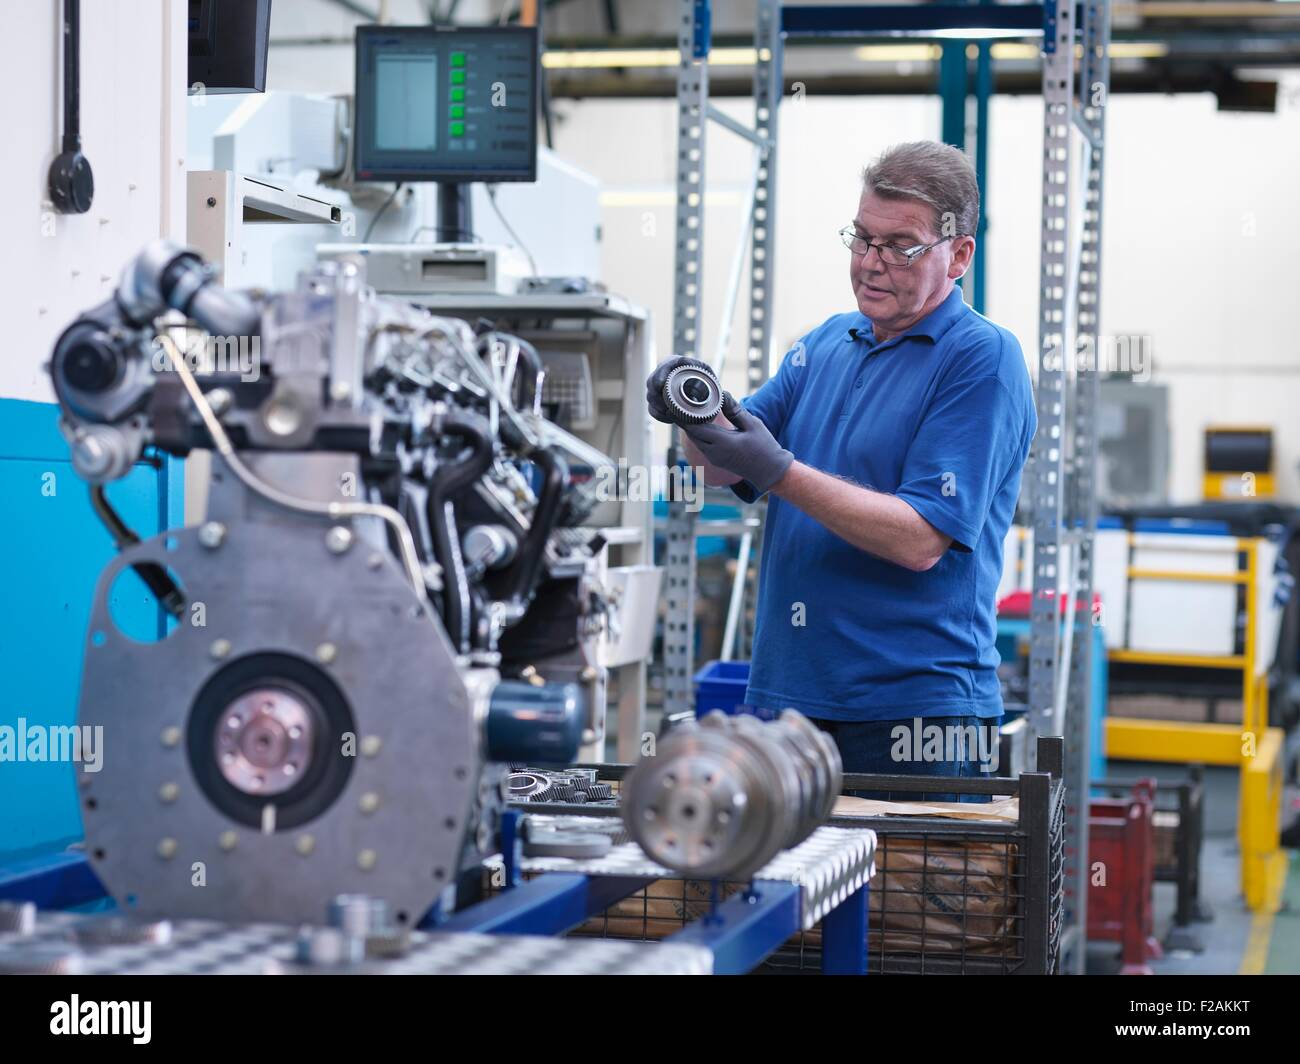 Engineer with gear wheel and diesel engine in engineering factory - Stock Image